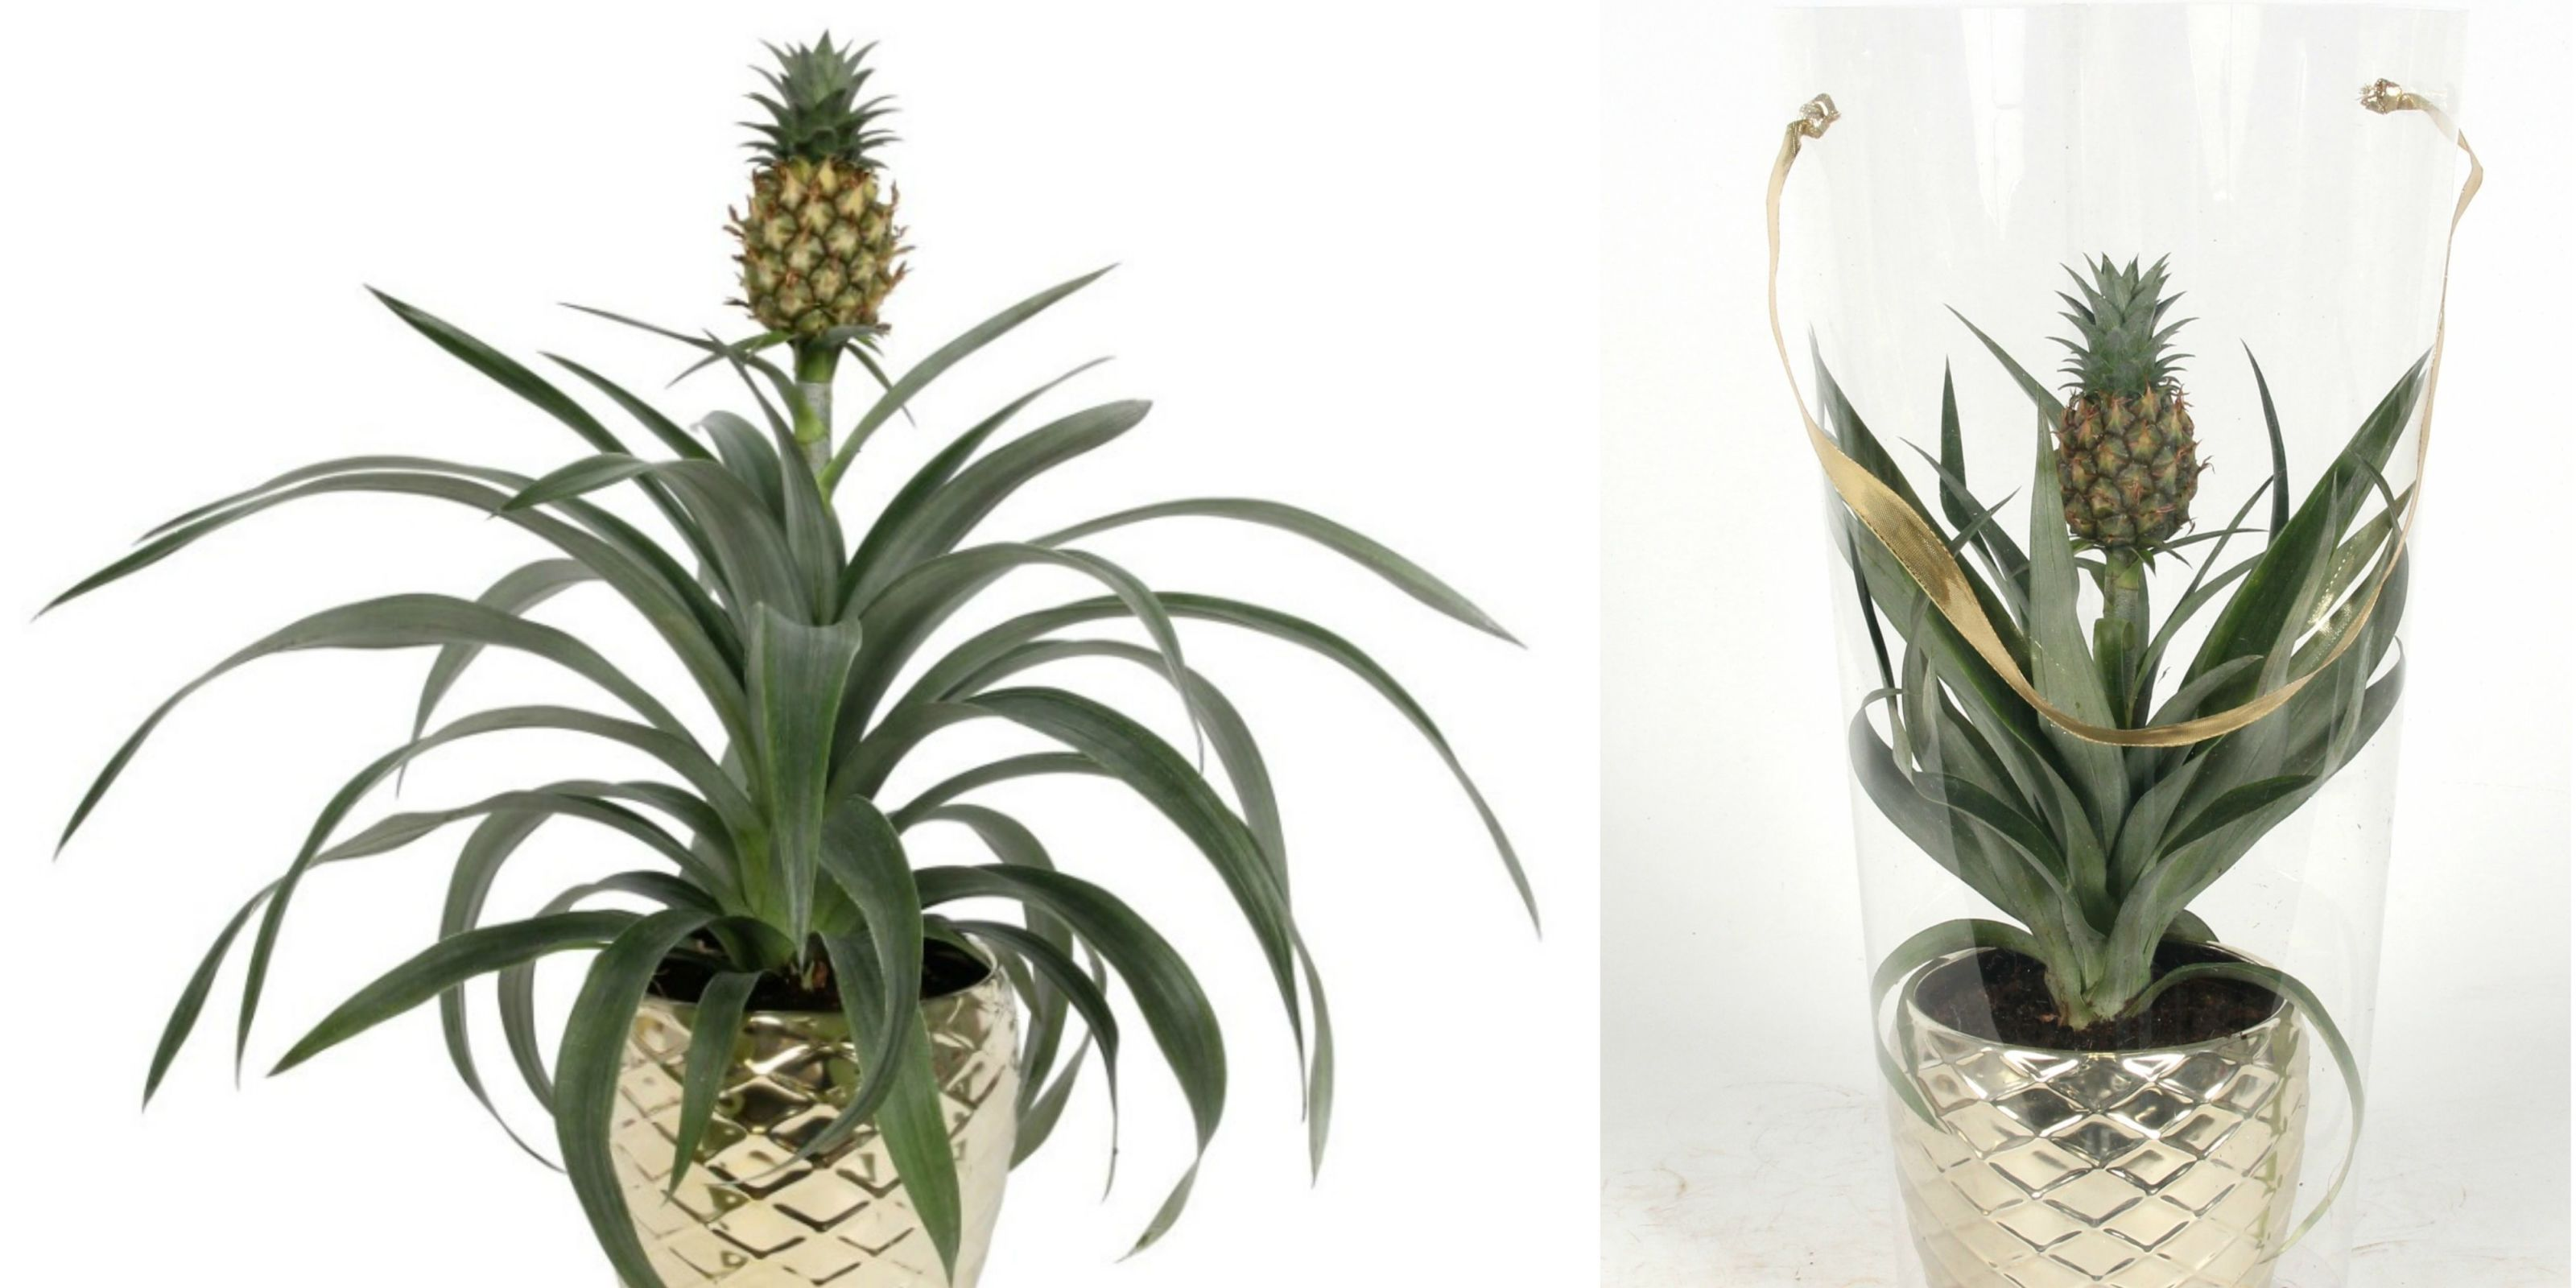 Asda Is Now Selling Pineapple Plants For 12 Asda Plants